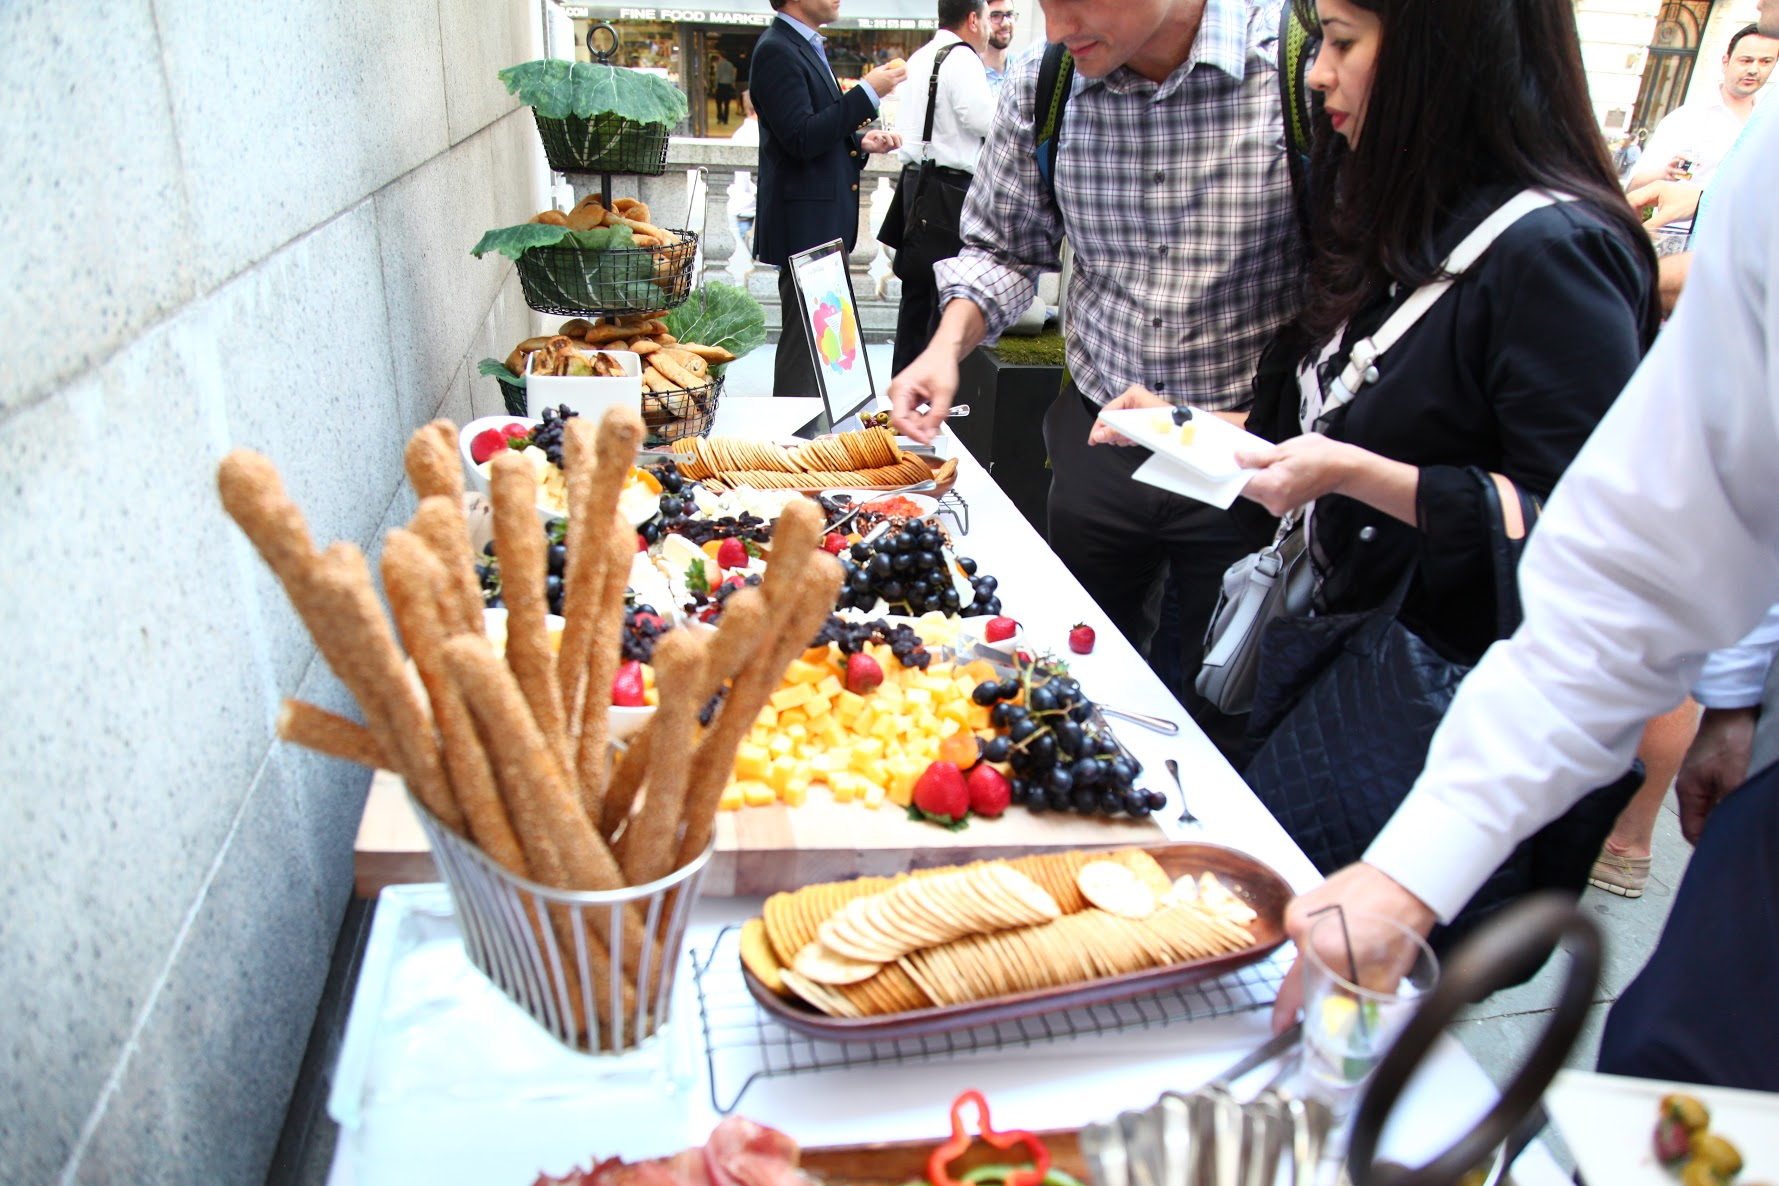 Bryant Park Grill Provided a Delicious Food Spread